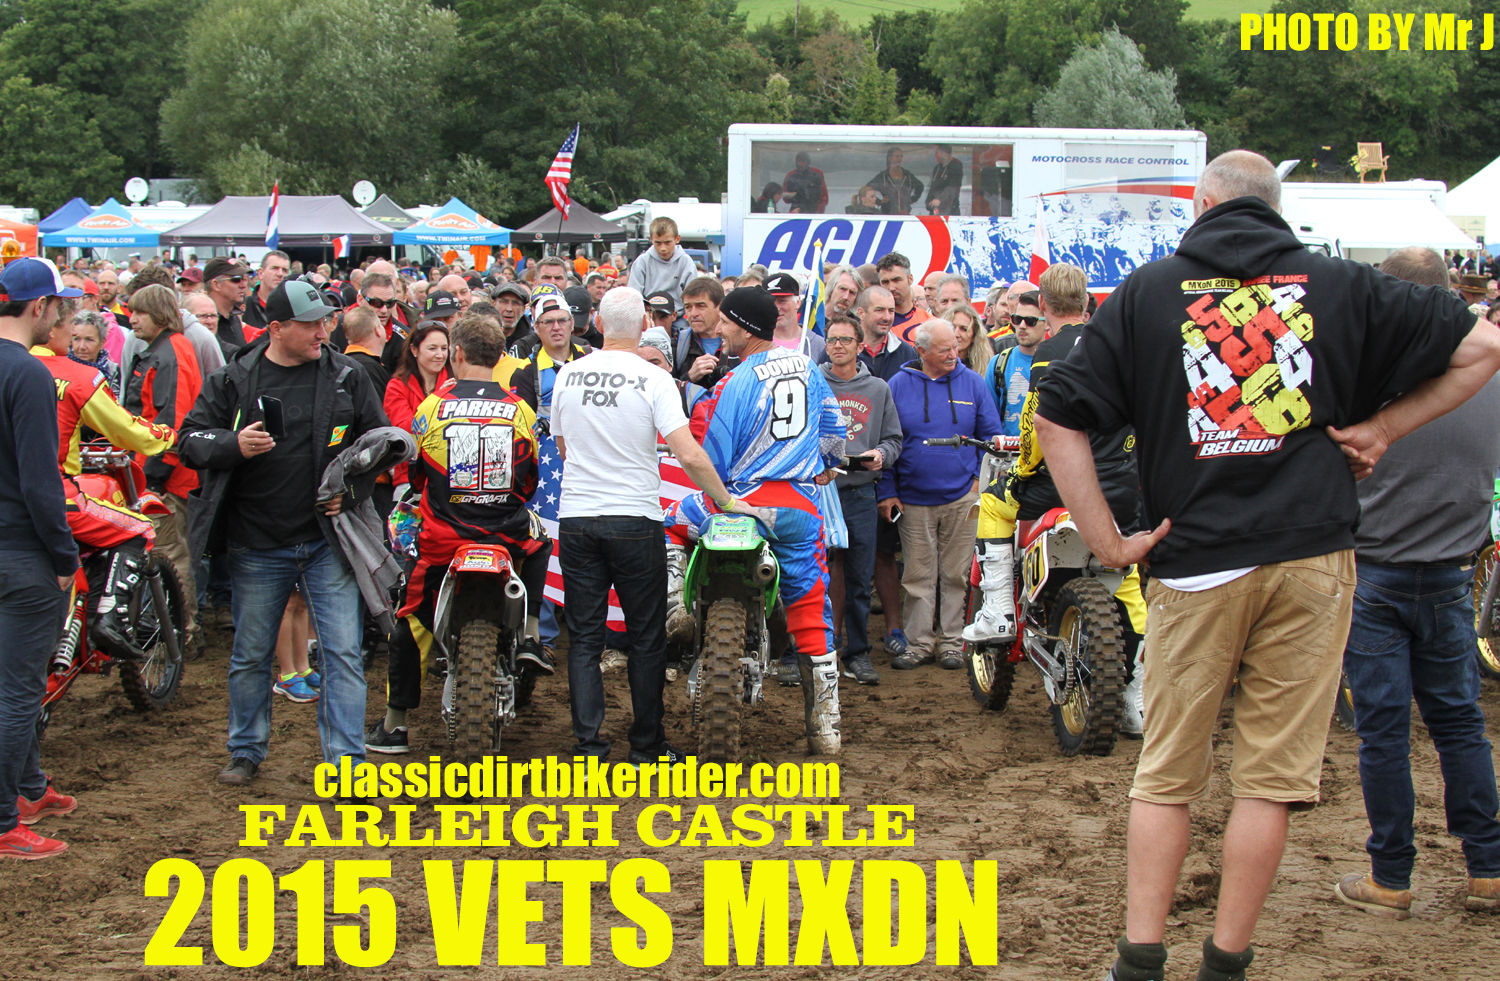 Vets MXDN 2015 PHOTOS & REPORT classicdirtbikerider.com Dave King keeps an eye on proceedings